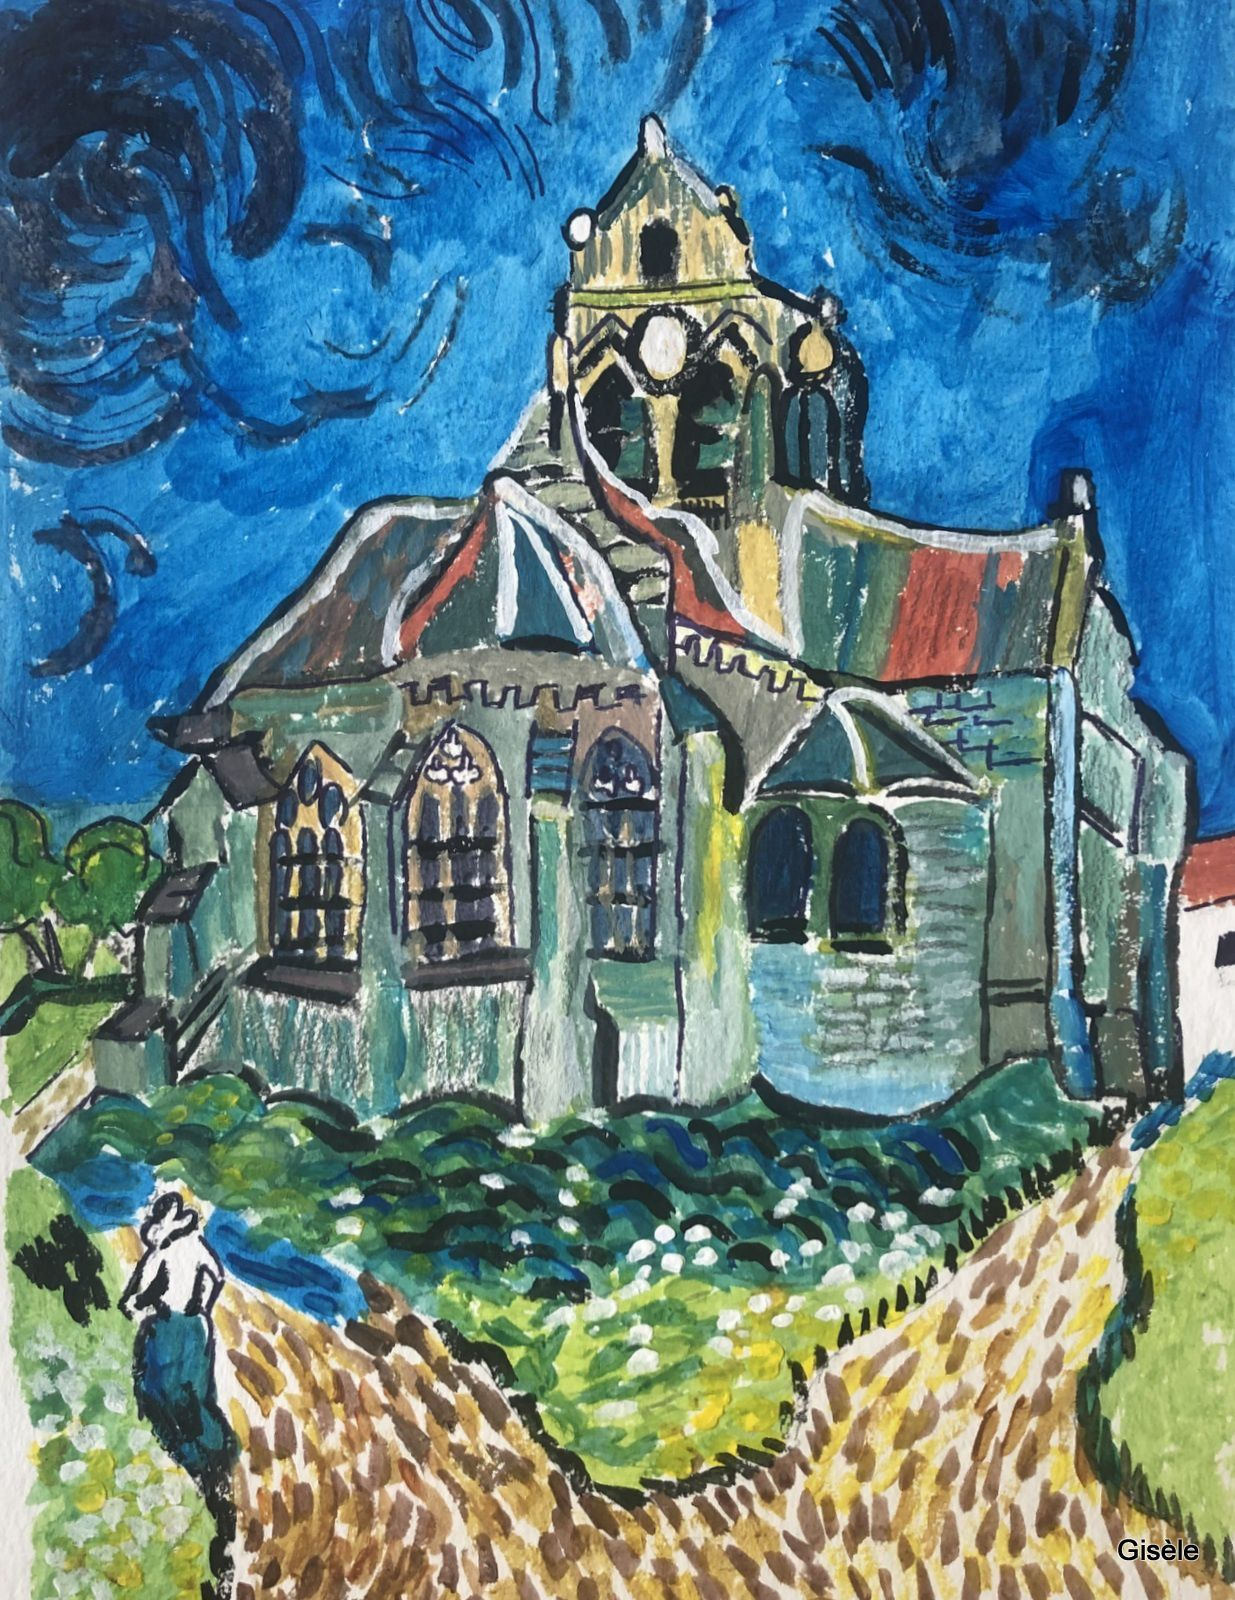 Reproduction du tableau de Van Gogh, l'église d'Auvers